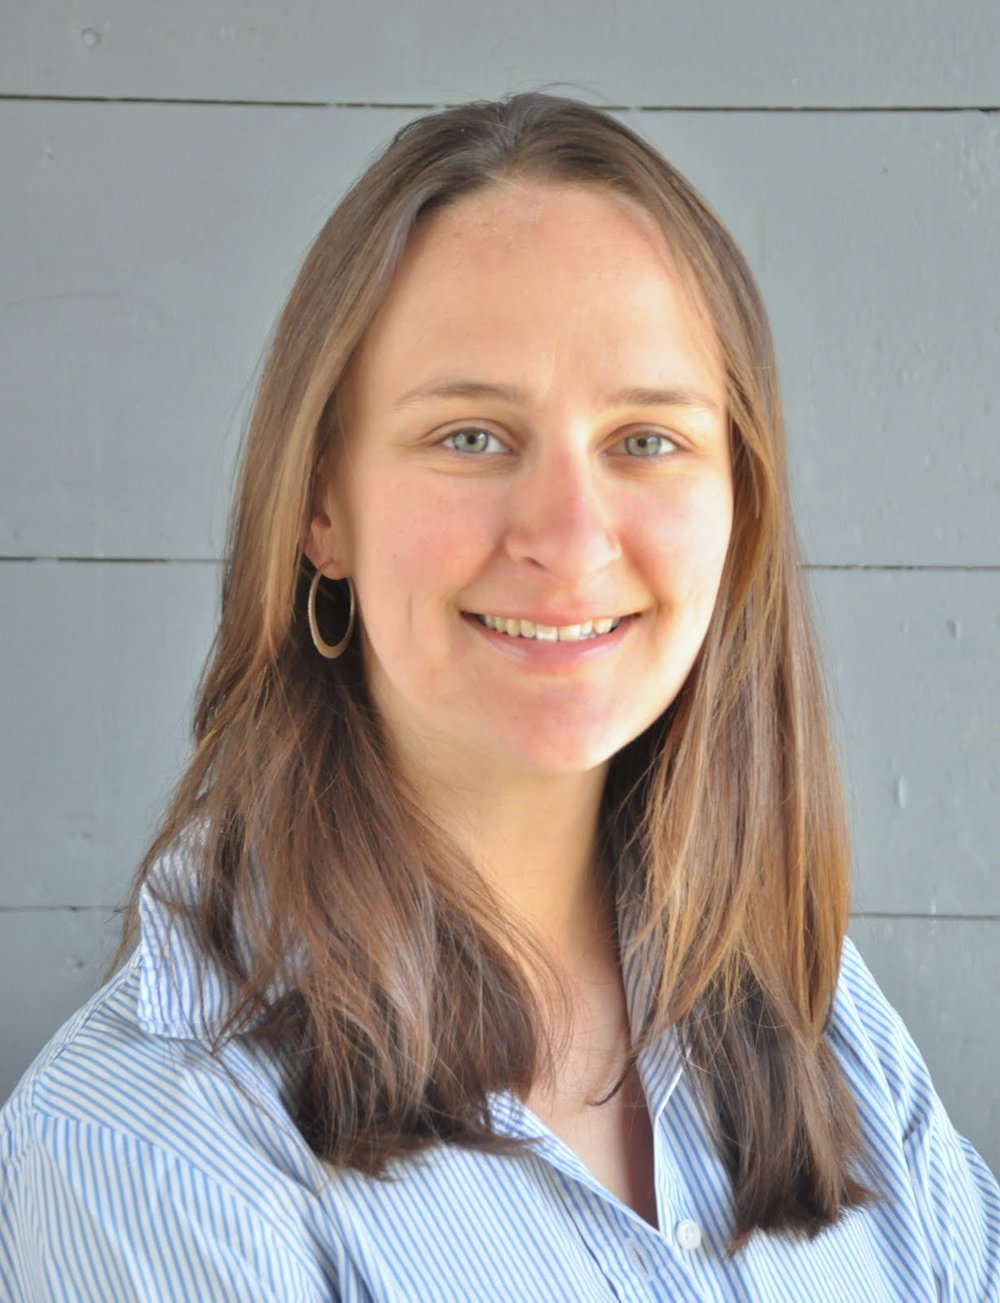 Kellan Hayes Co-founder & Advisor Kellan has over 12 years of experience as an international and national program manager for organizations working on conservation, education, and advocacy. Working for organizations as diverse as the Jane Goodall Institute and Autodesk, she has always been passionate about using her skills to protect people and the planet. Kellan has her MBA from UC Davis and became engaged with the team through D-lab courses. She advises Good Nature on business development and processes, fundraising, and partnerships. She is regularly recognized for her commitment to leadership development and entrepreneurial endeavors.